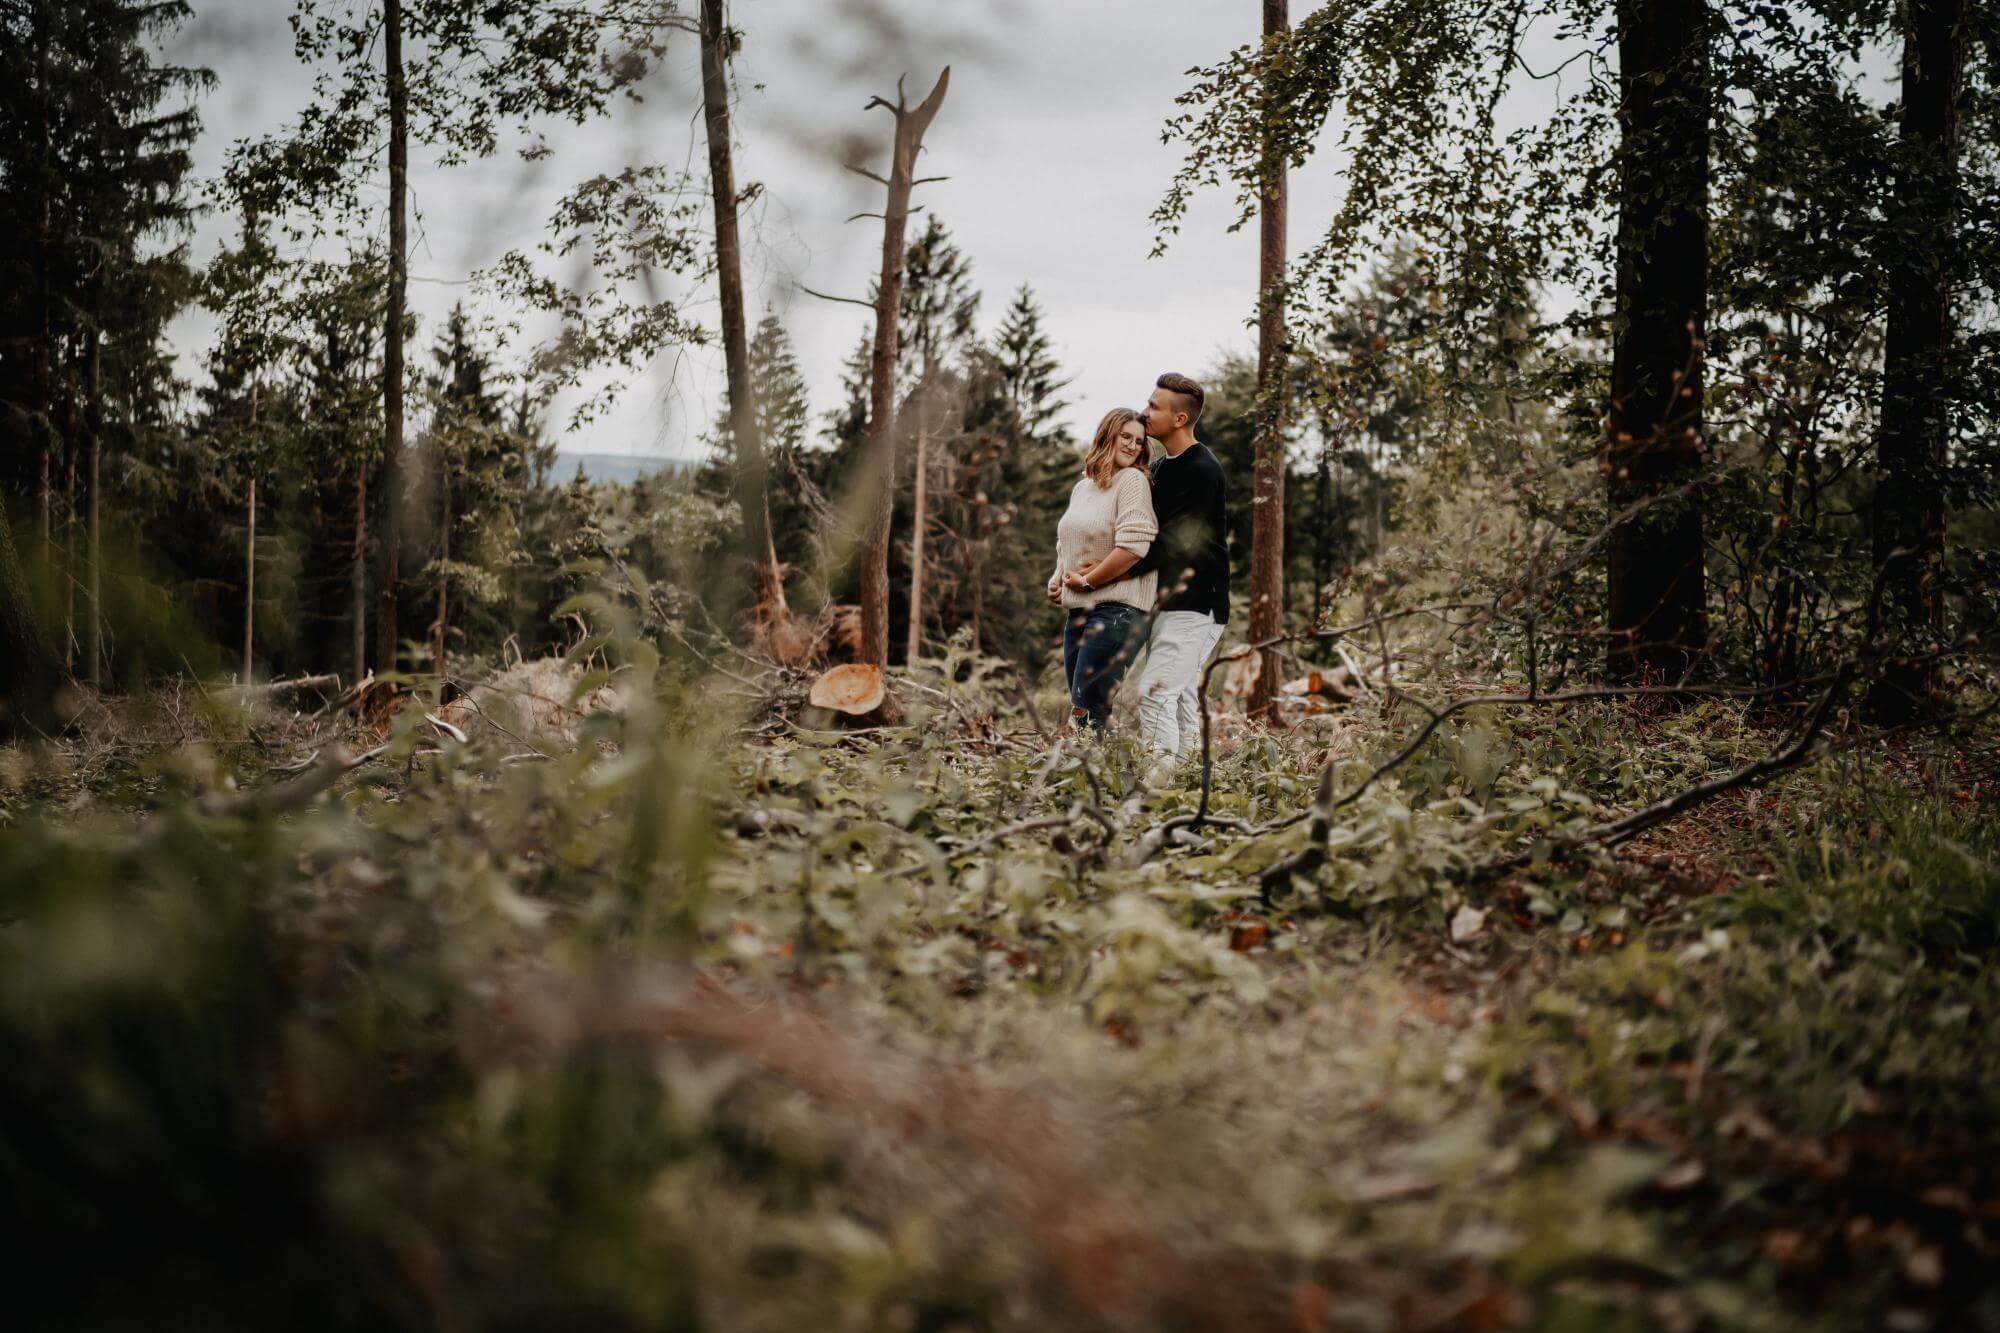 Foto mit Titel 'Portrait paarshooting Drover Heide Couple Forest' in Kategorie 'Paarshooting'